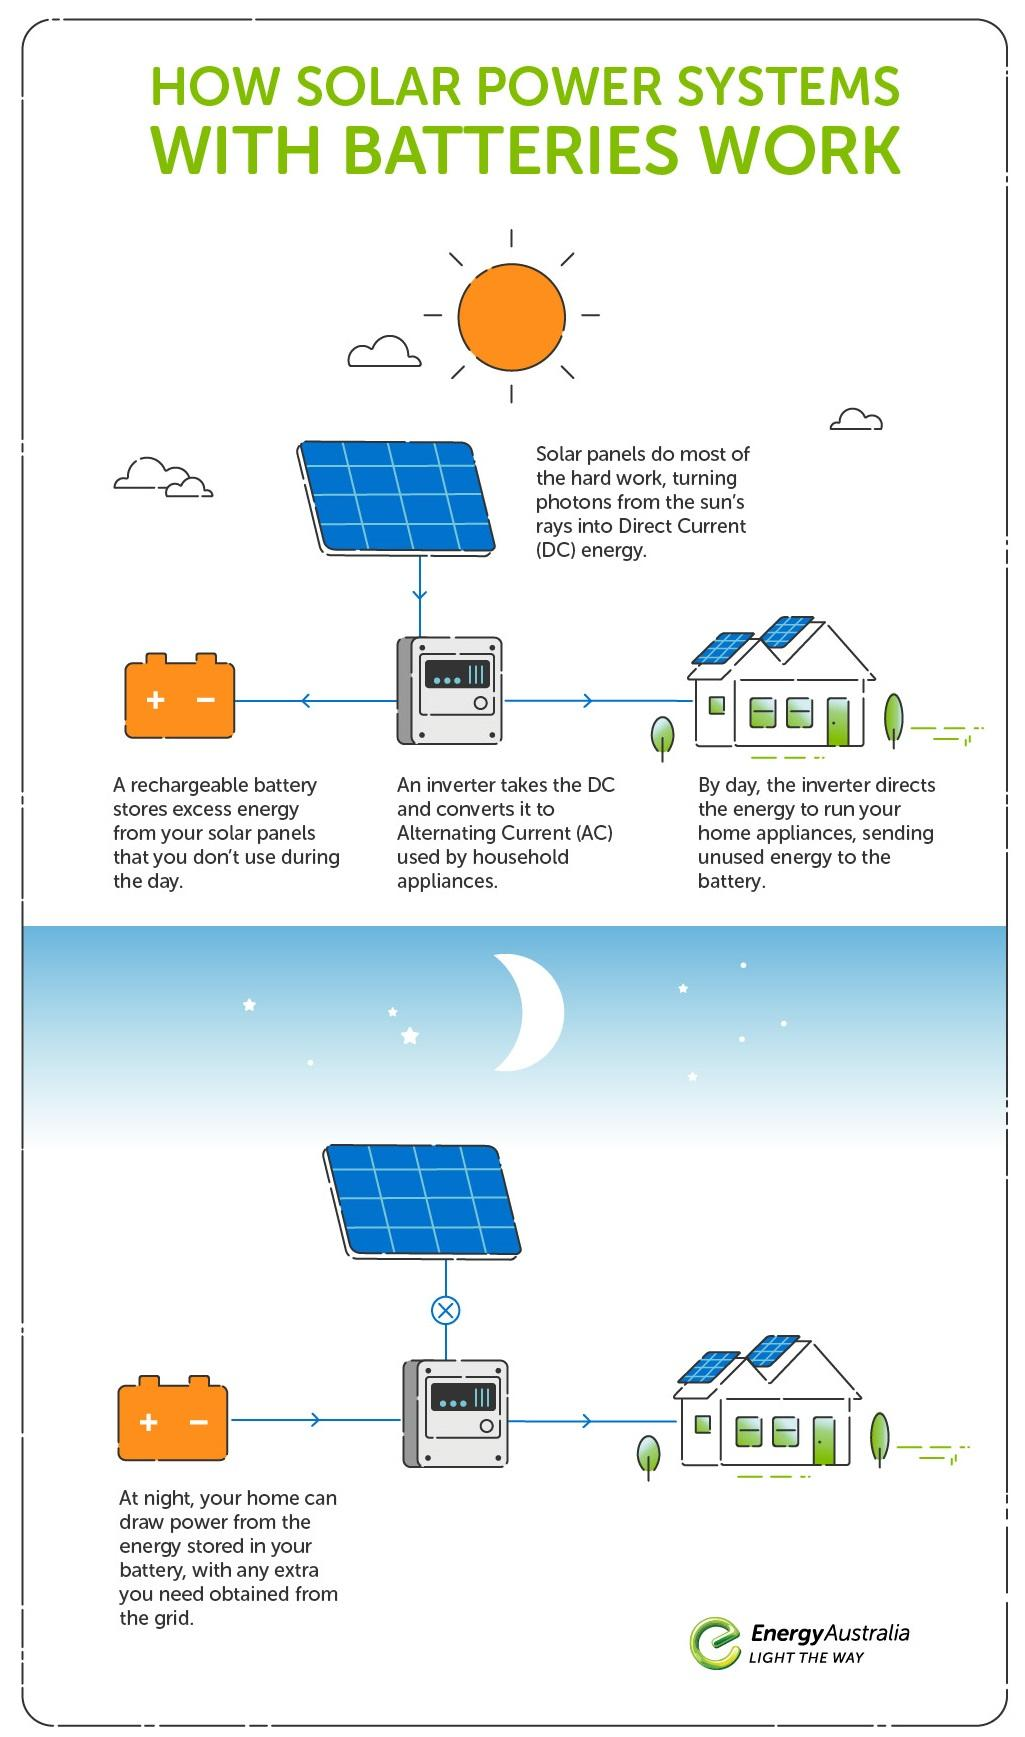 How solar power systems with batteries work_cropped.jpg